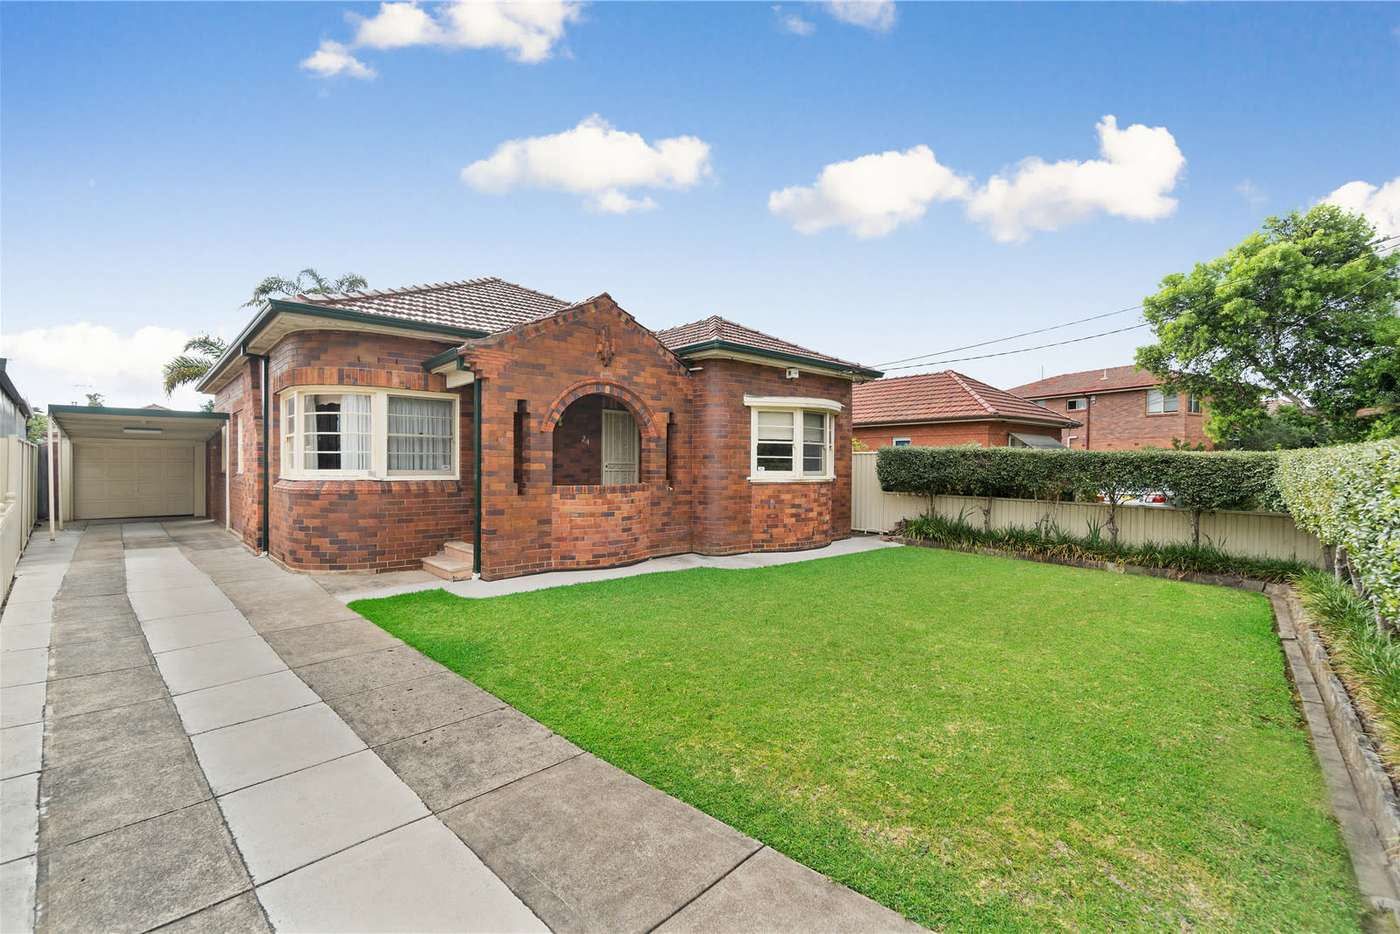 Main view of Homely house listing, 24 Schofield Avenue, Earlwood NSW 2206